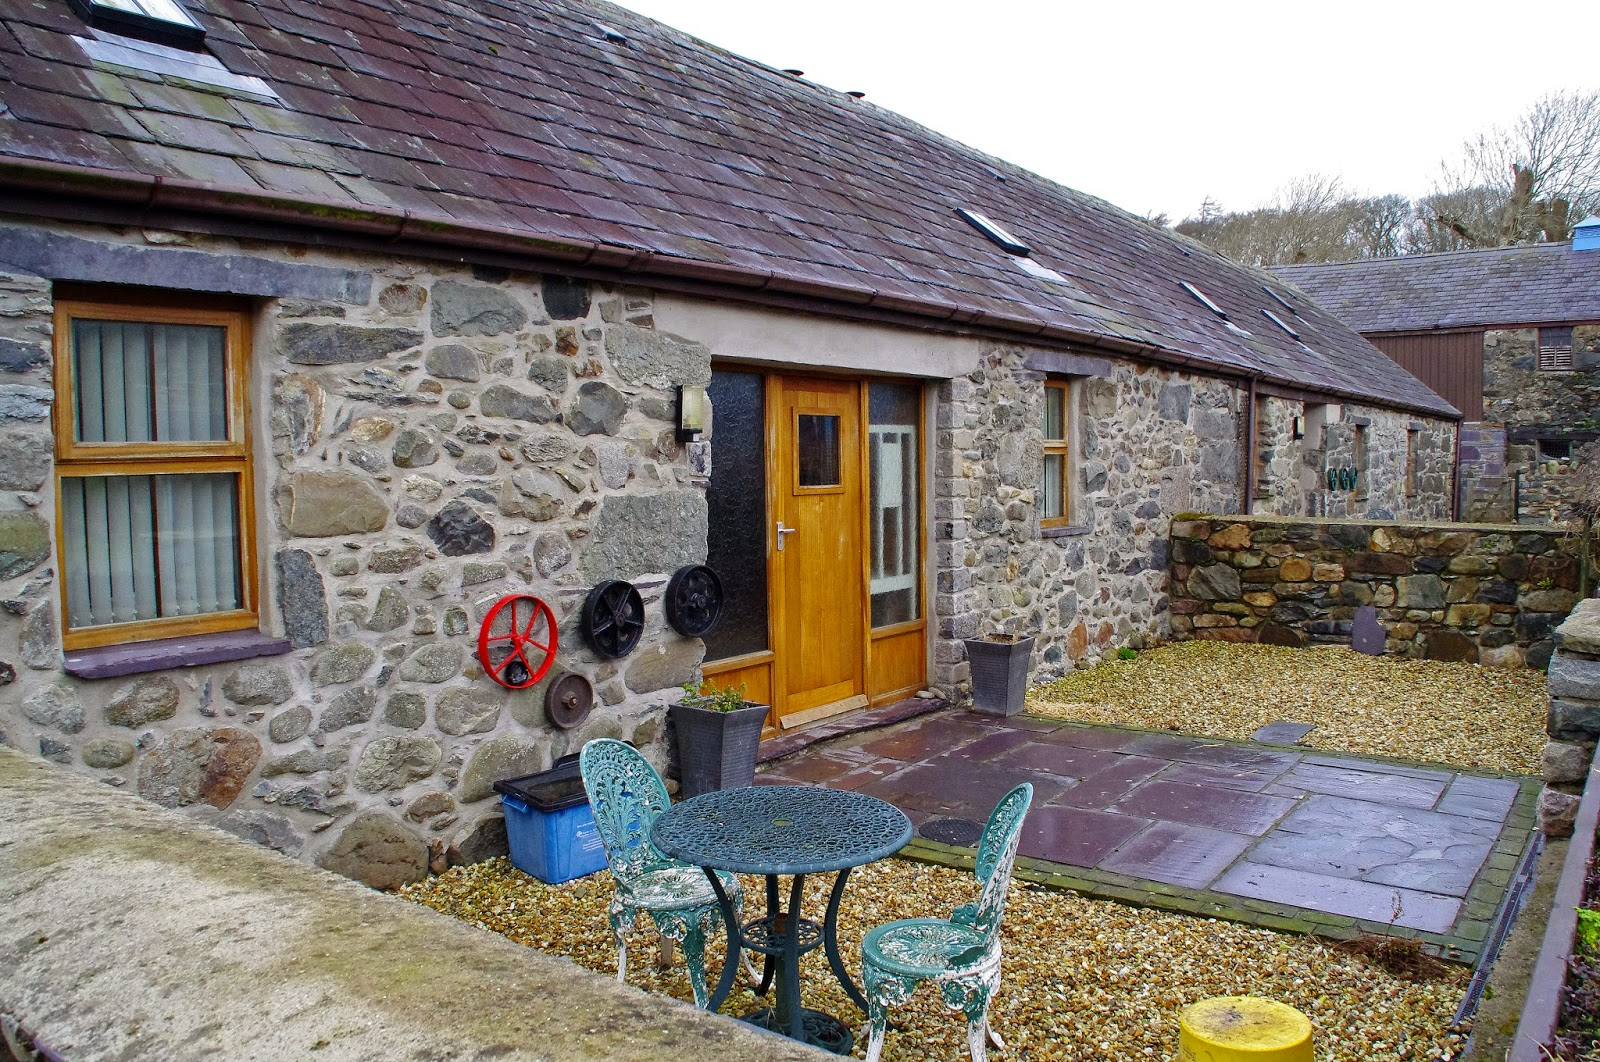 https://www.theaussieflashpacker.com/2015/03/luxury-accommodation-review-beudy-mawr.html